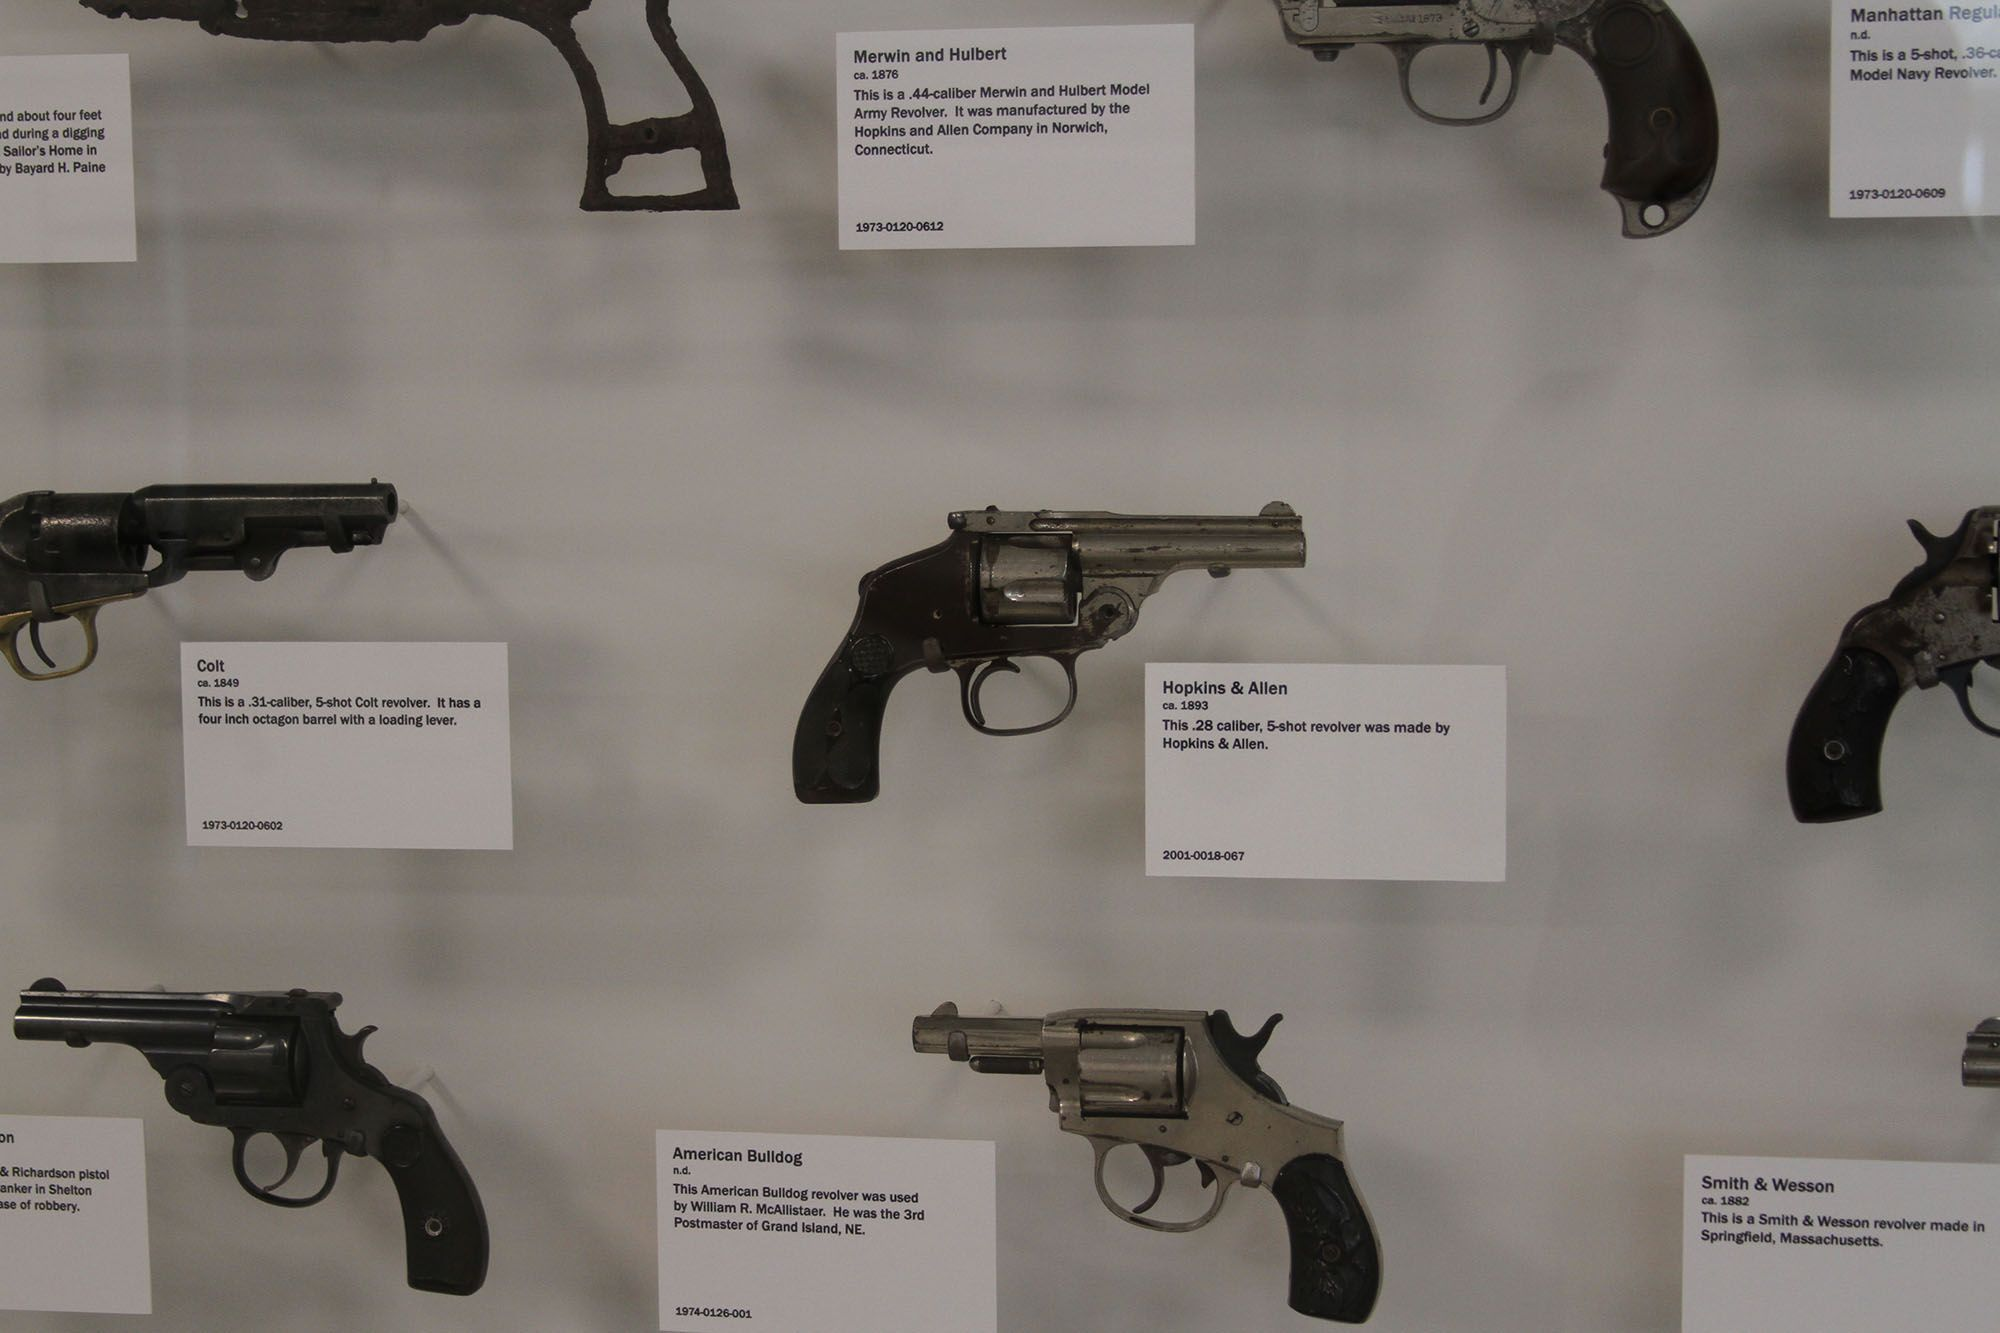 Are you a fan of firearms? We have a fantastic collection